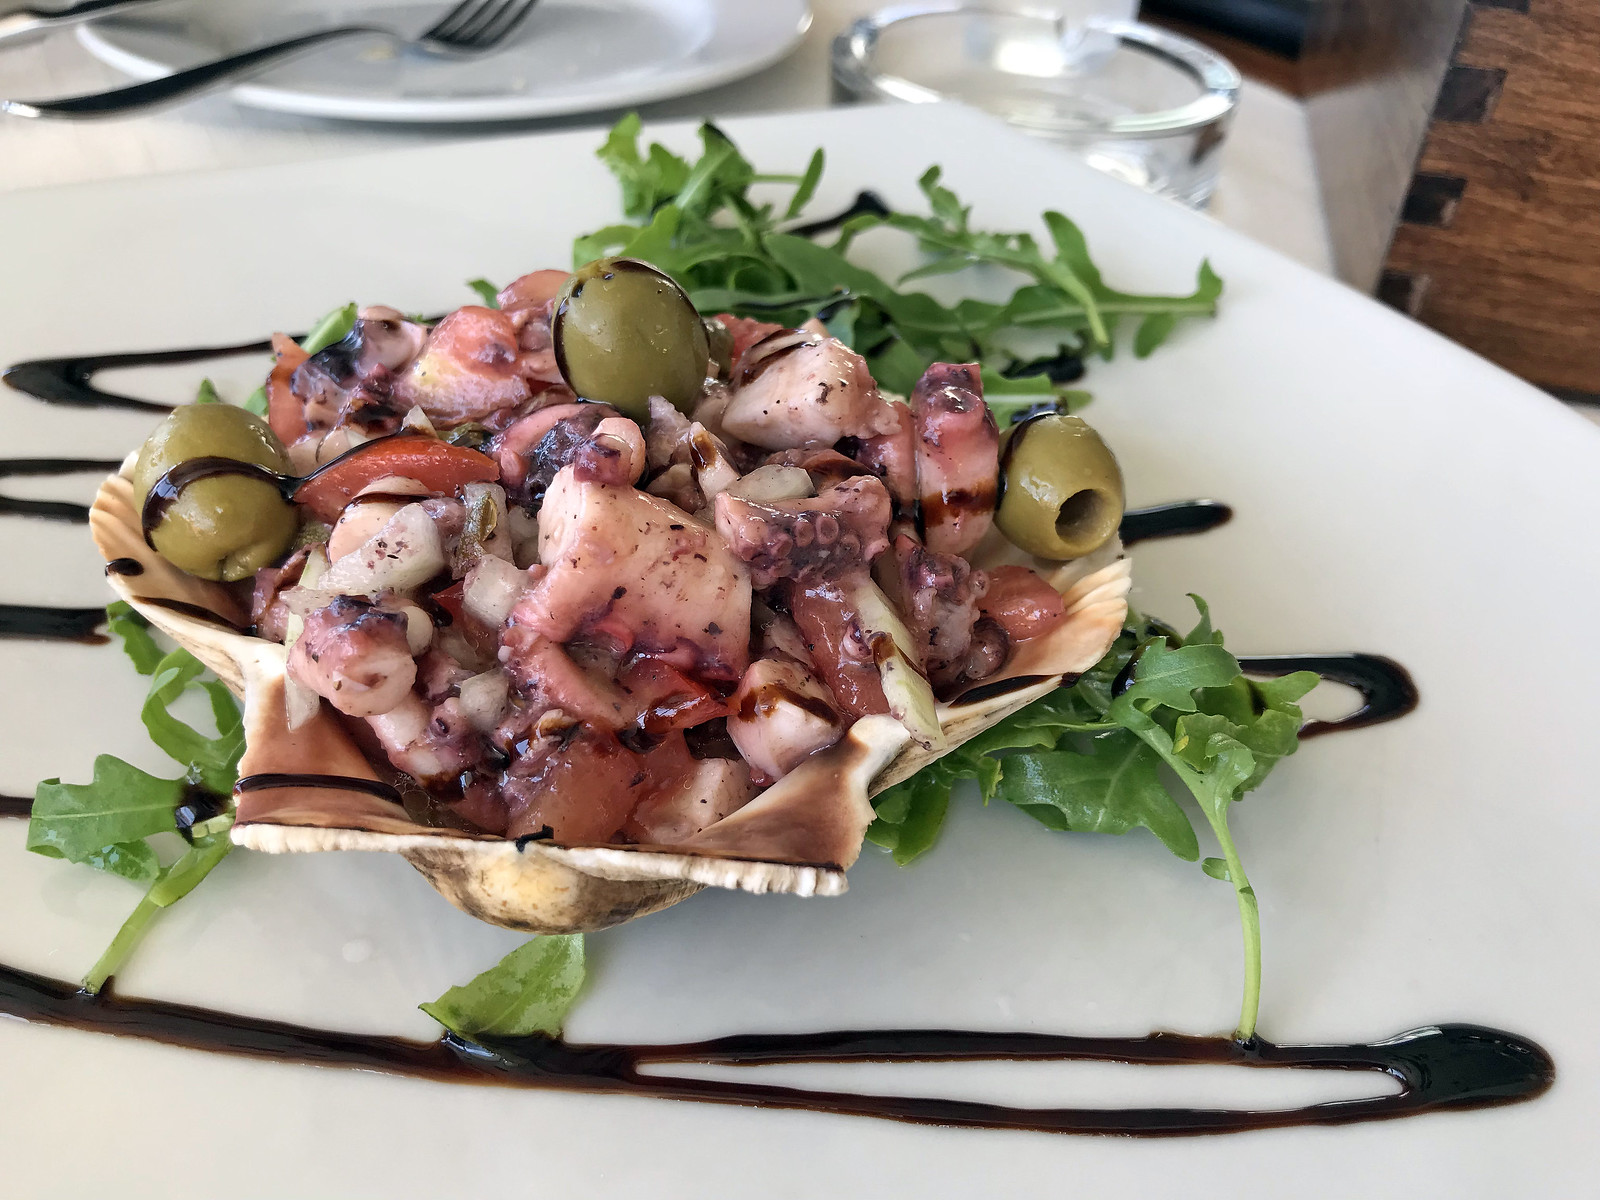 Octopus salad at Lungomare Restaurant